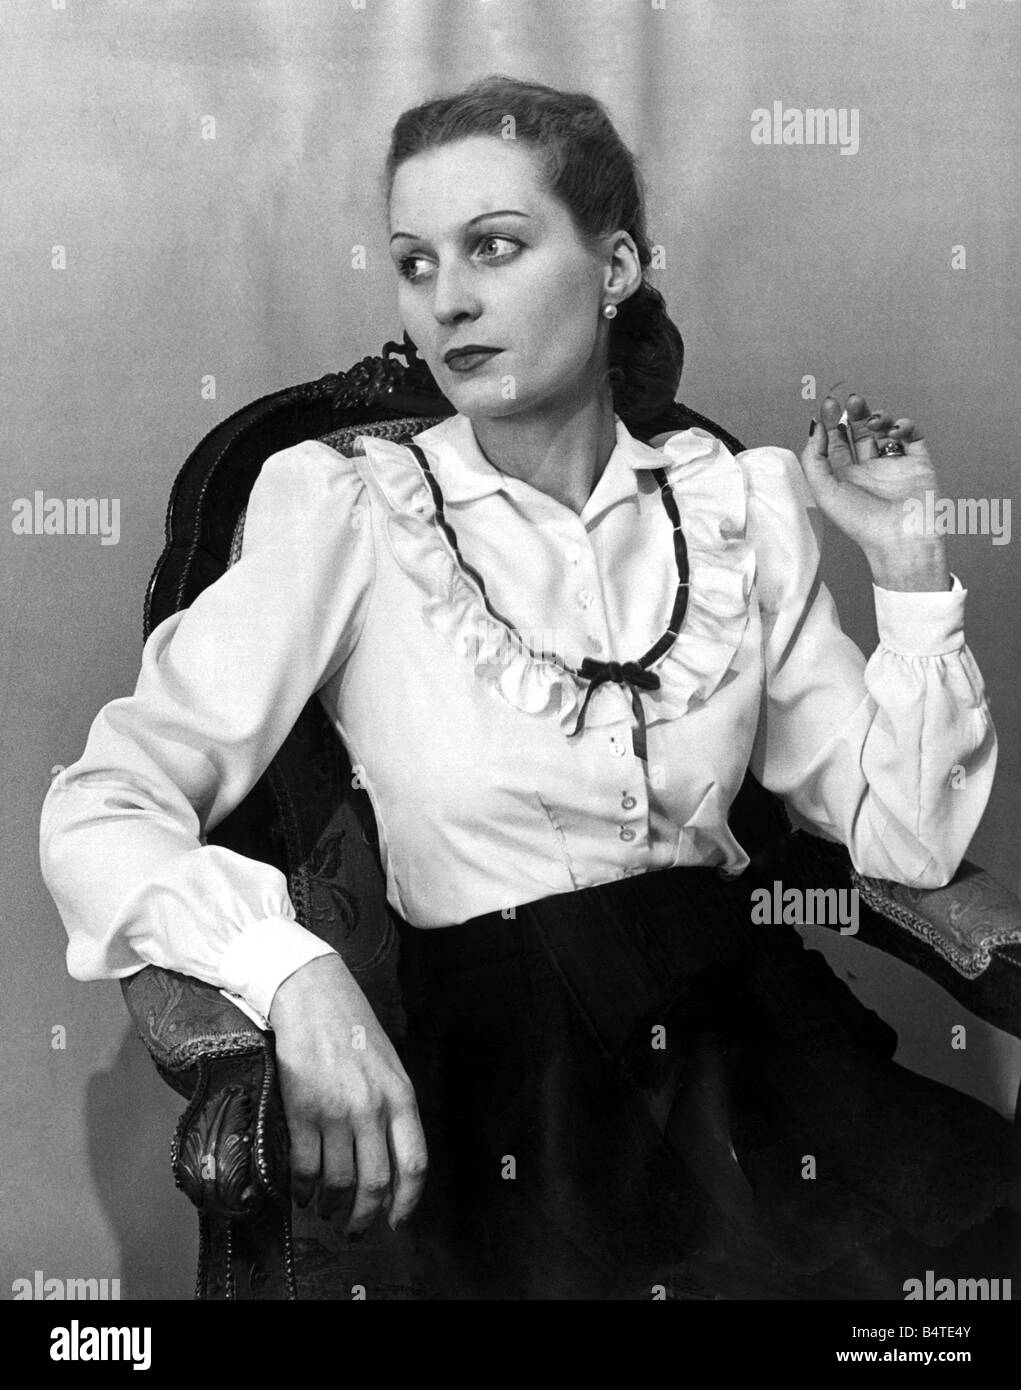 Stock Photo - Two way blouse Fashion clothing shoot January 1948 Woman reclining in chair holding smoking cigarette Model wearing washing crepe pique and ...  sc 1 st  Alamy & Two way blouse Fashion clothing shoot January 1948 Woman reclining ... islam-shia.org